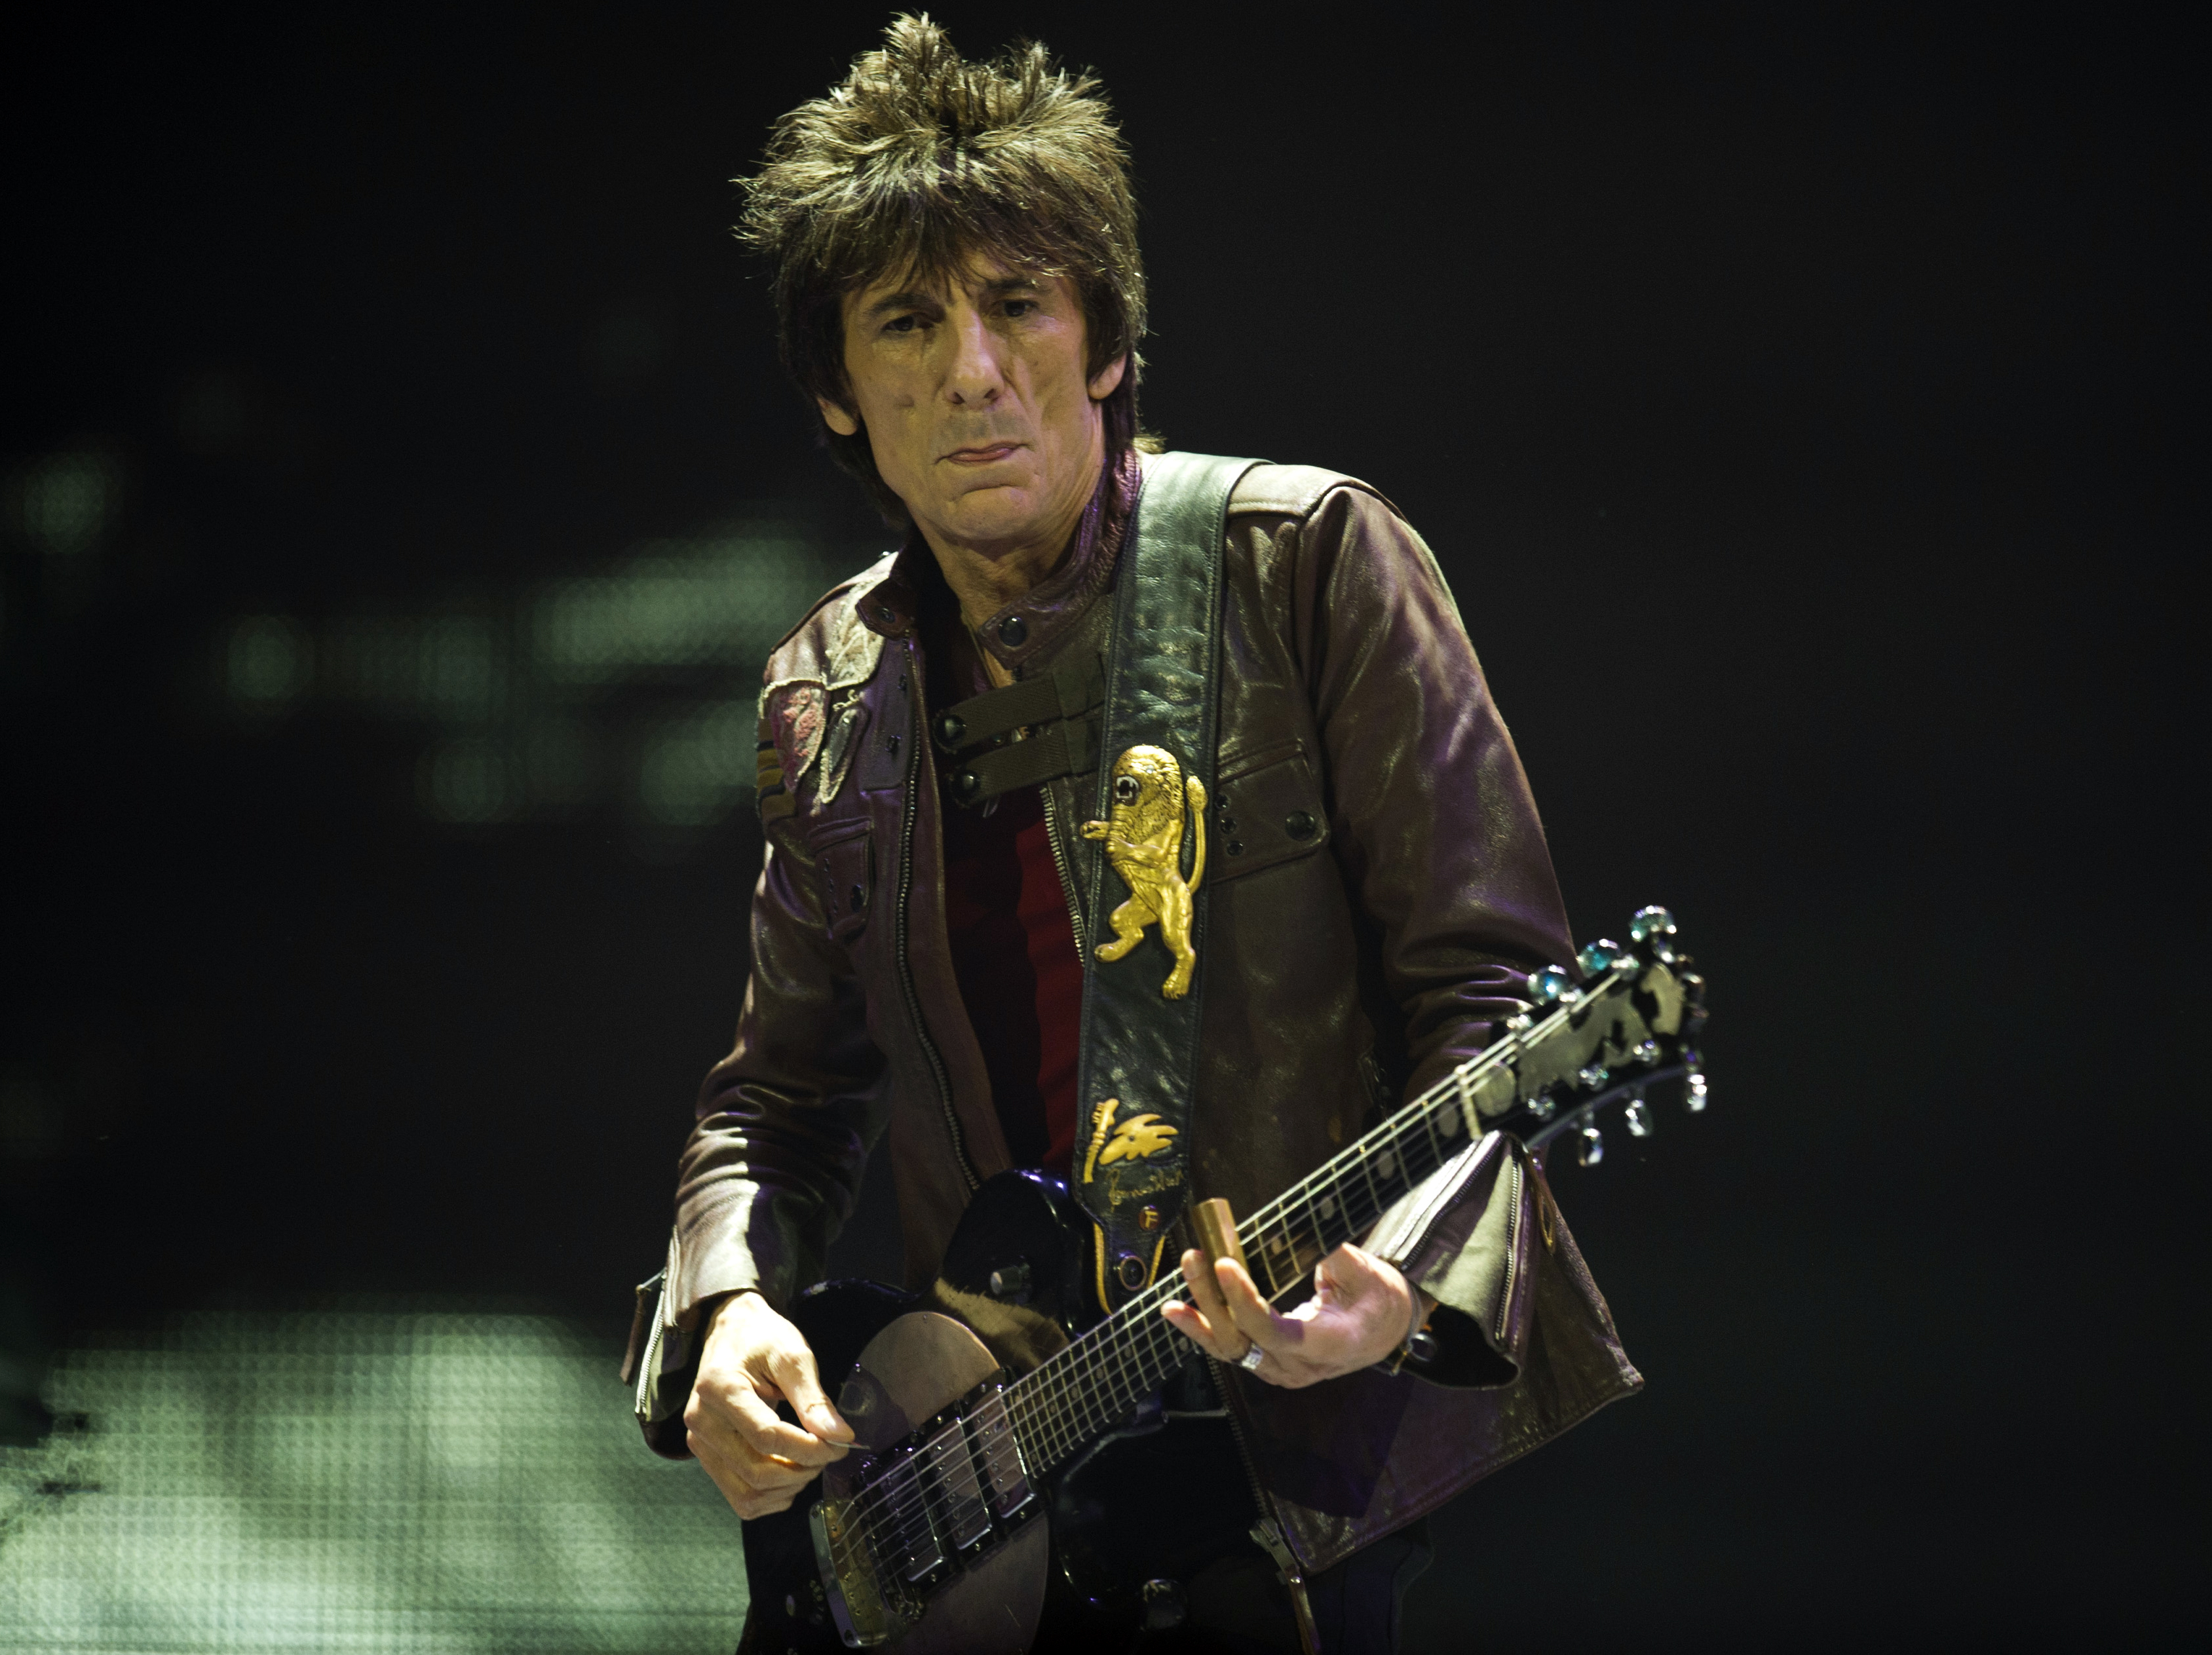 Ronniewood.